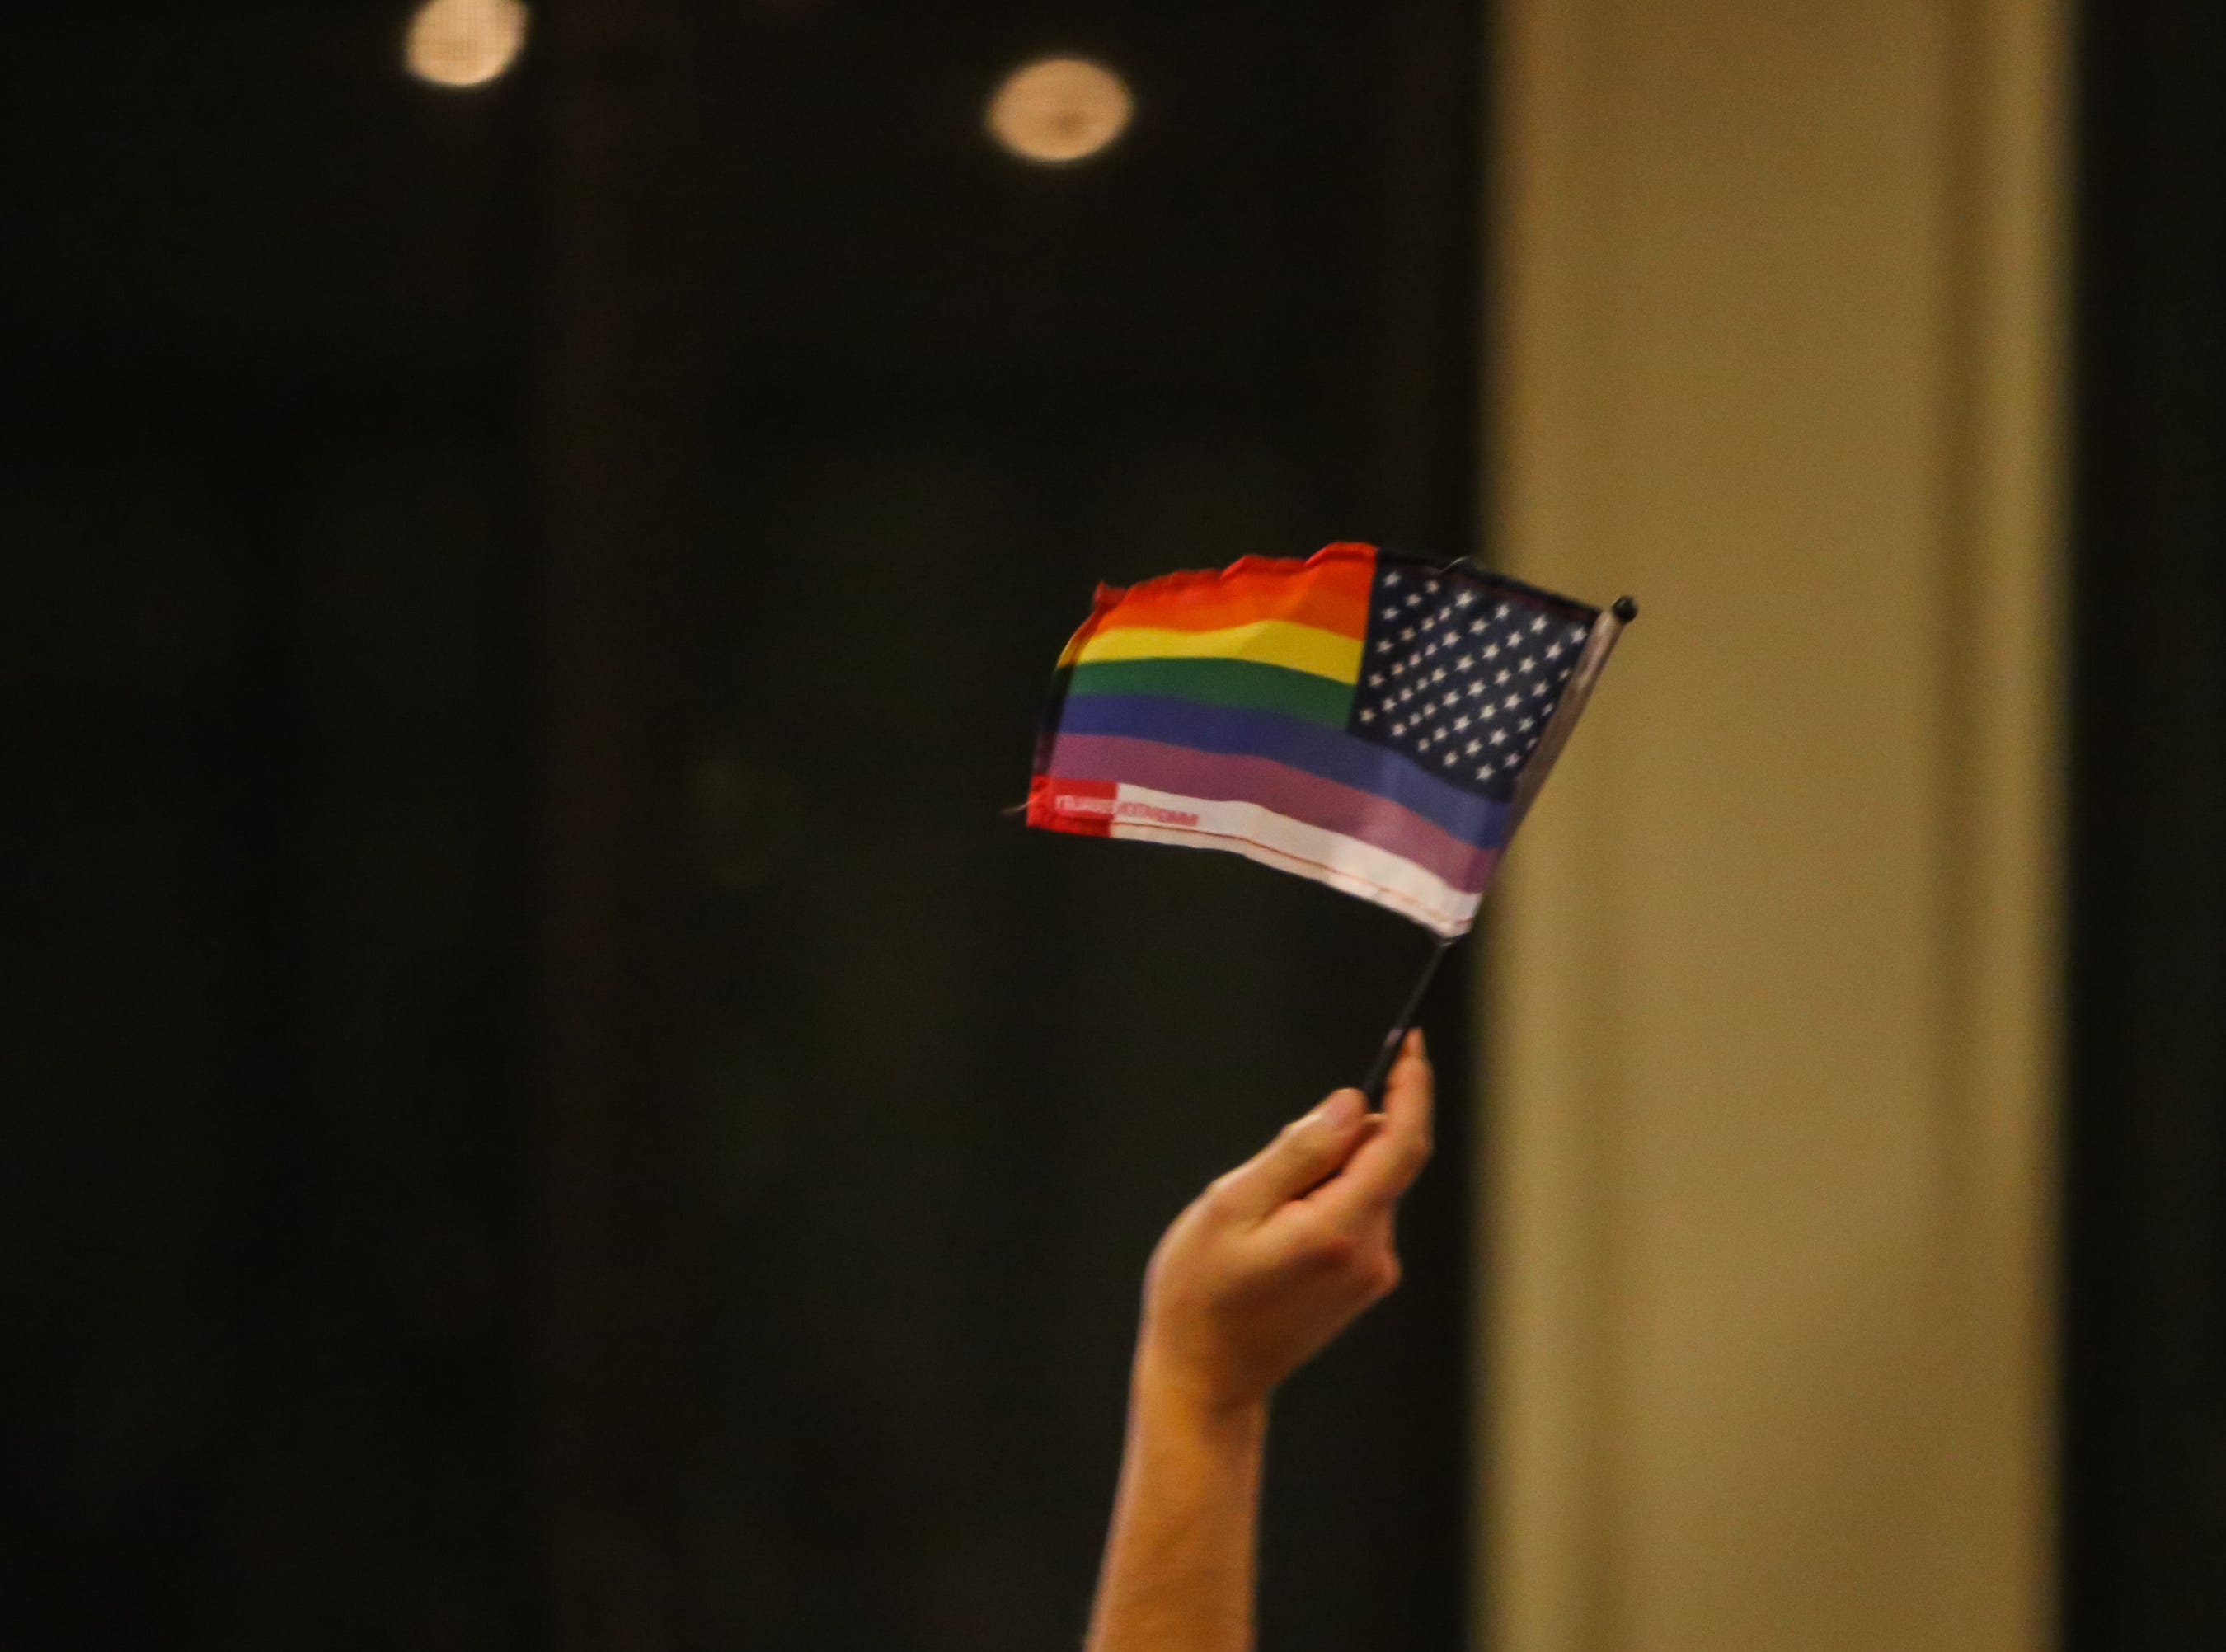 A Pride flag in the style of the American flag is waved at the Larimer County Democrats' watch party Tuesday at the Fort Collins Marriott. The flag was waved anytime Jared Polis was mentioned. Polis was named the first openly gay governor.